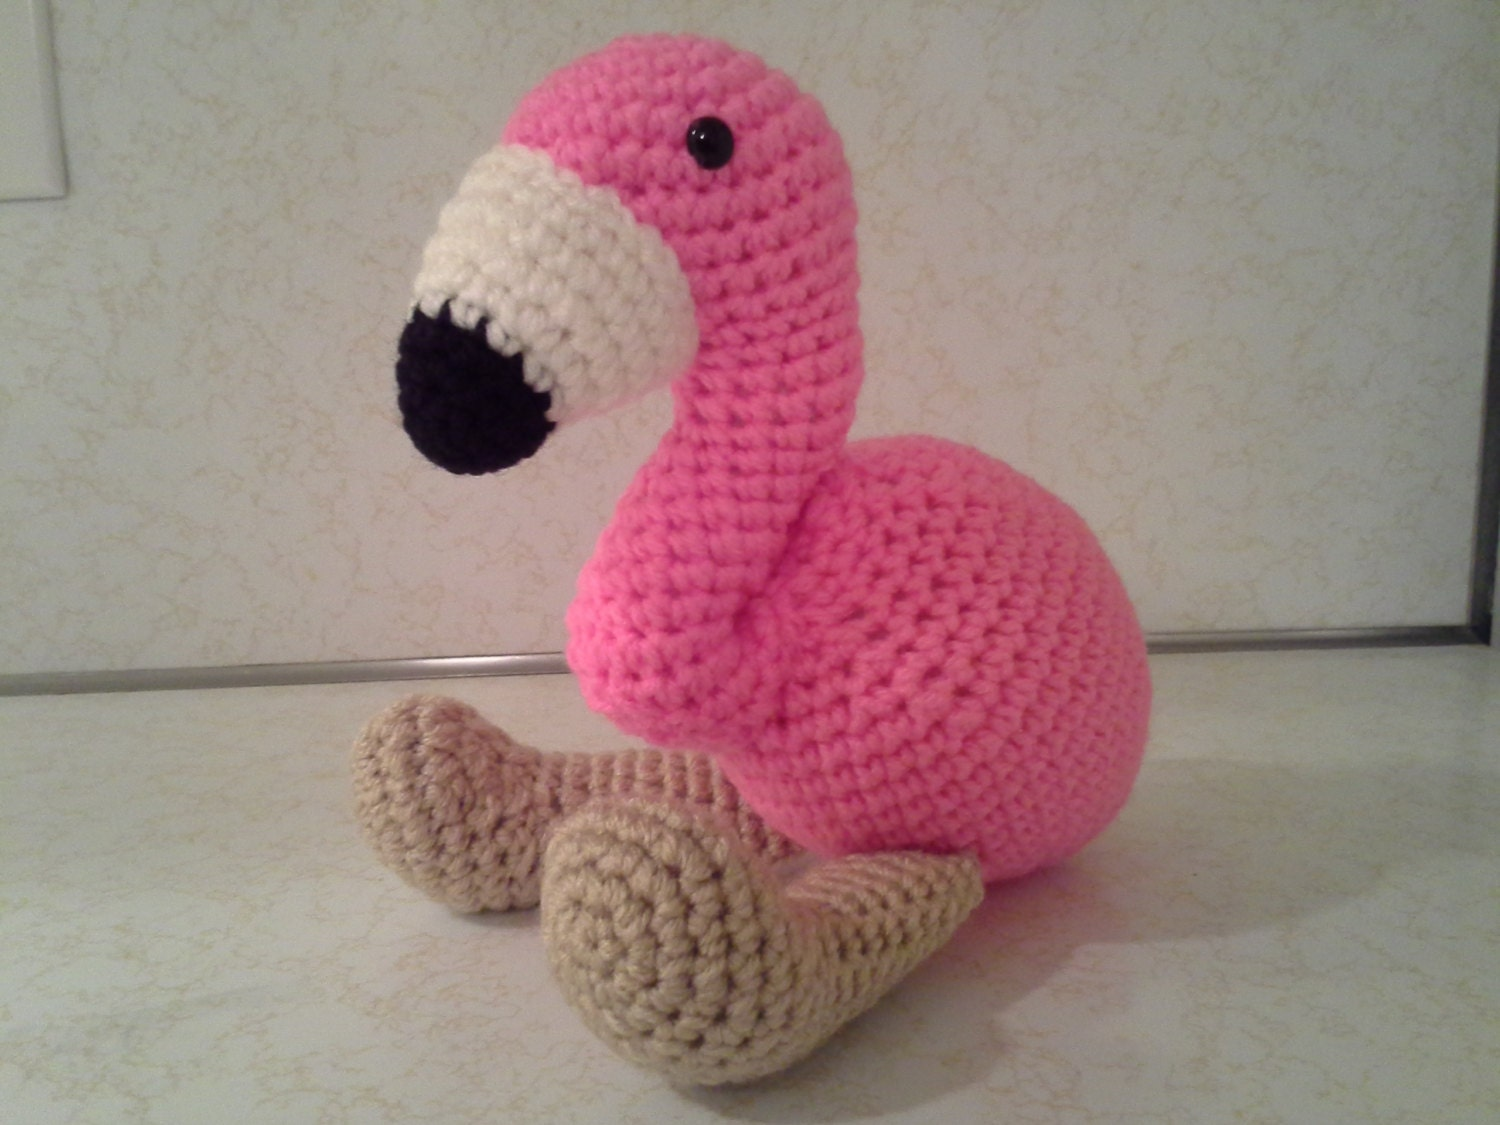 Amigurumi Stuffing : Flamingo Crochet Amigurumi Stuffed Animal by HookAndStitches